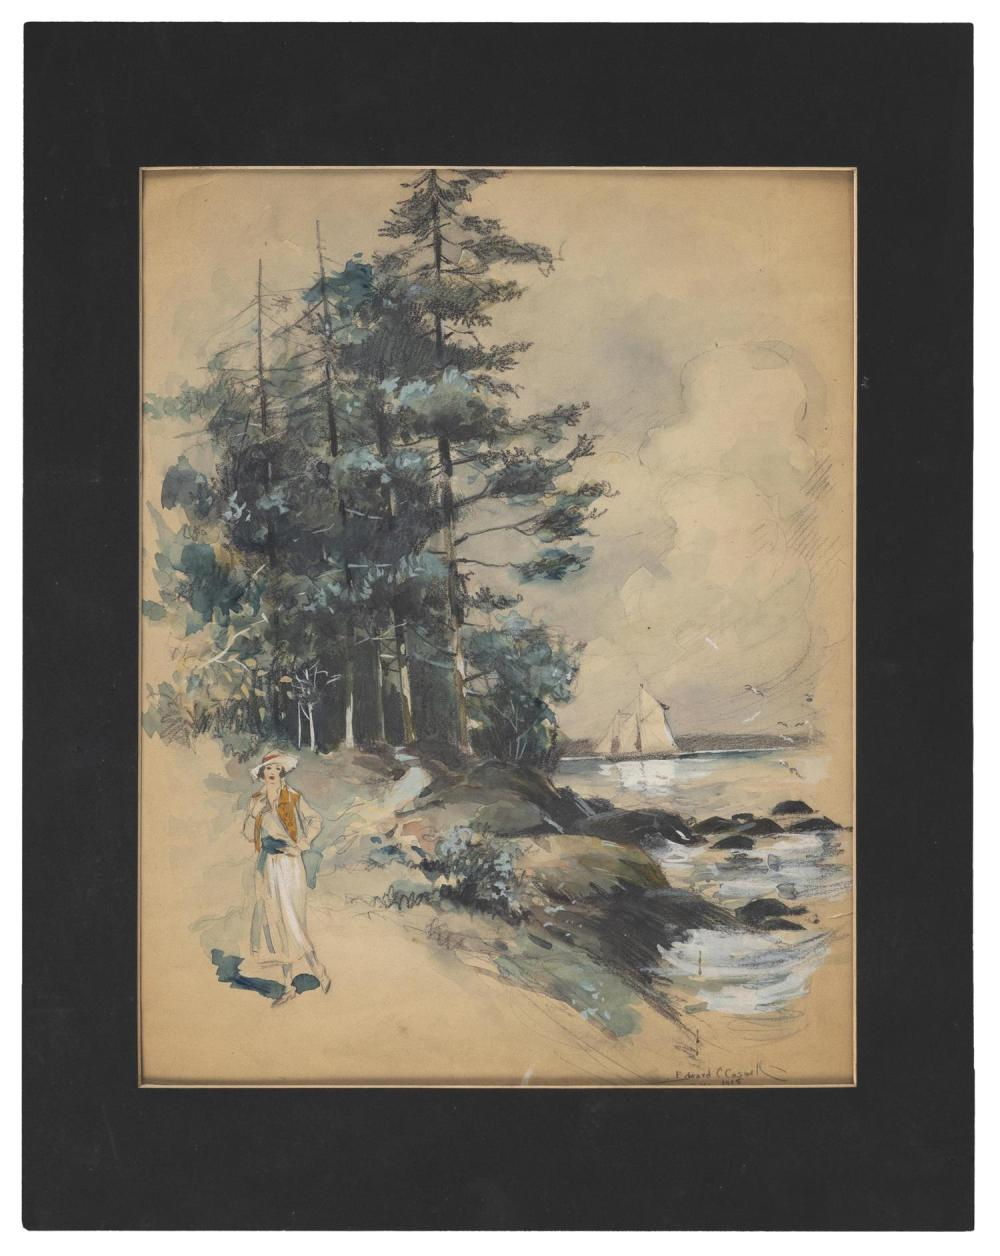 """EDWARD C. CASWELL, New York, 1879-1963, A fashionable young woman by the shore., Watercolor and gouache, 13.25"""" x 10.25"""" sight. Unfr..."""